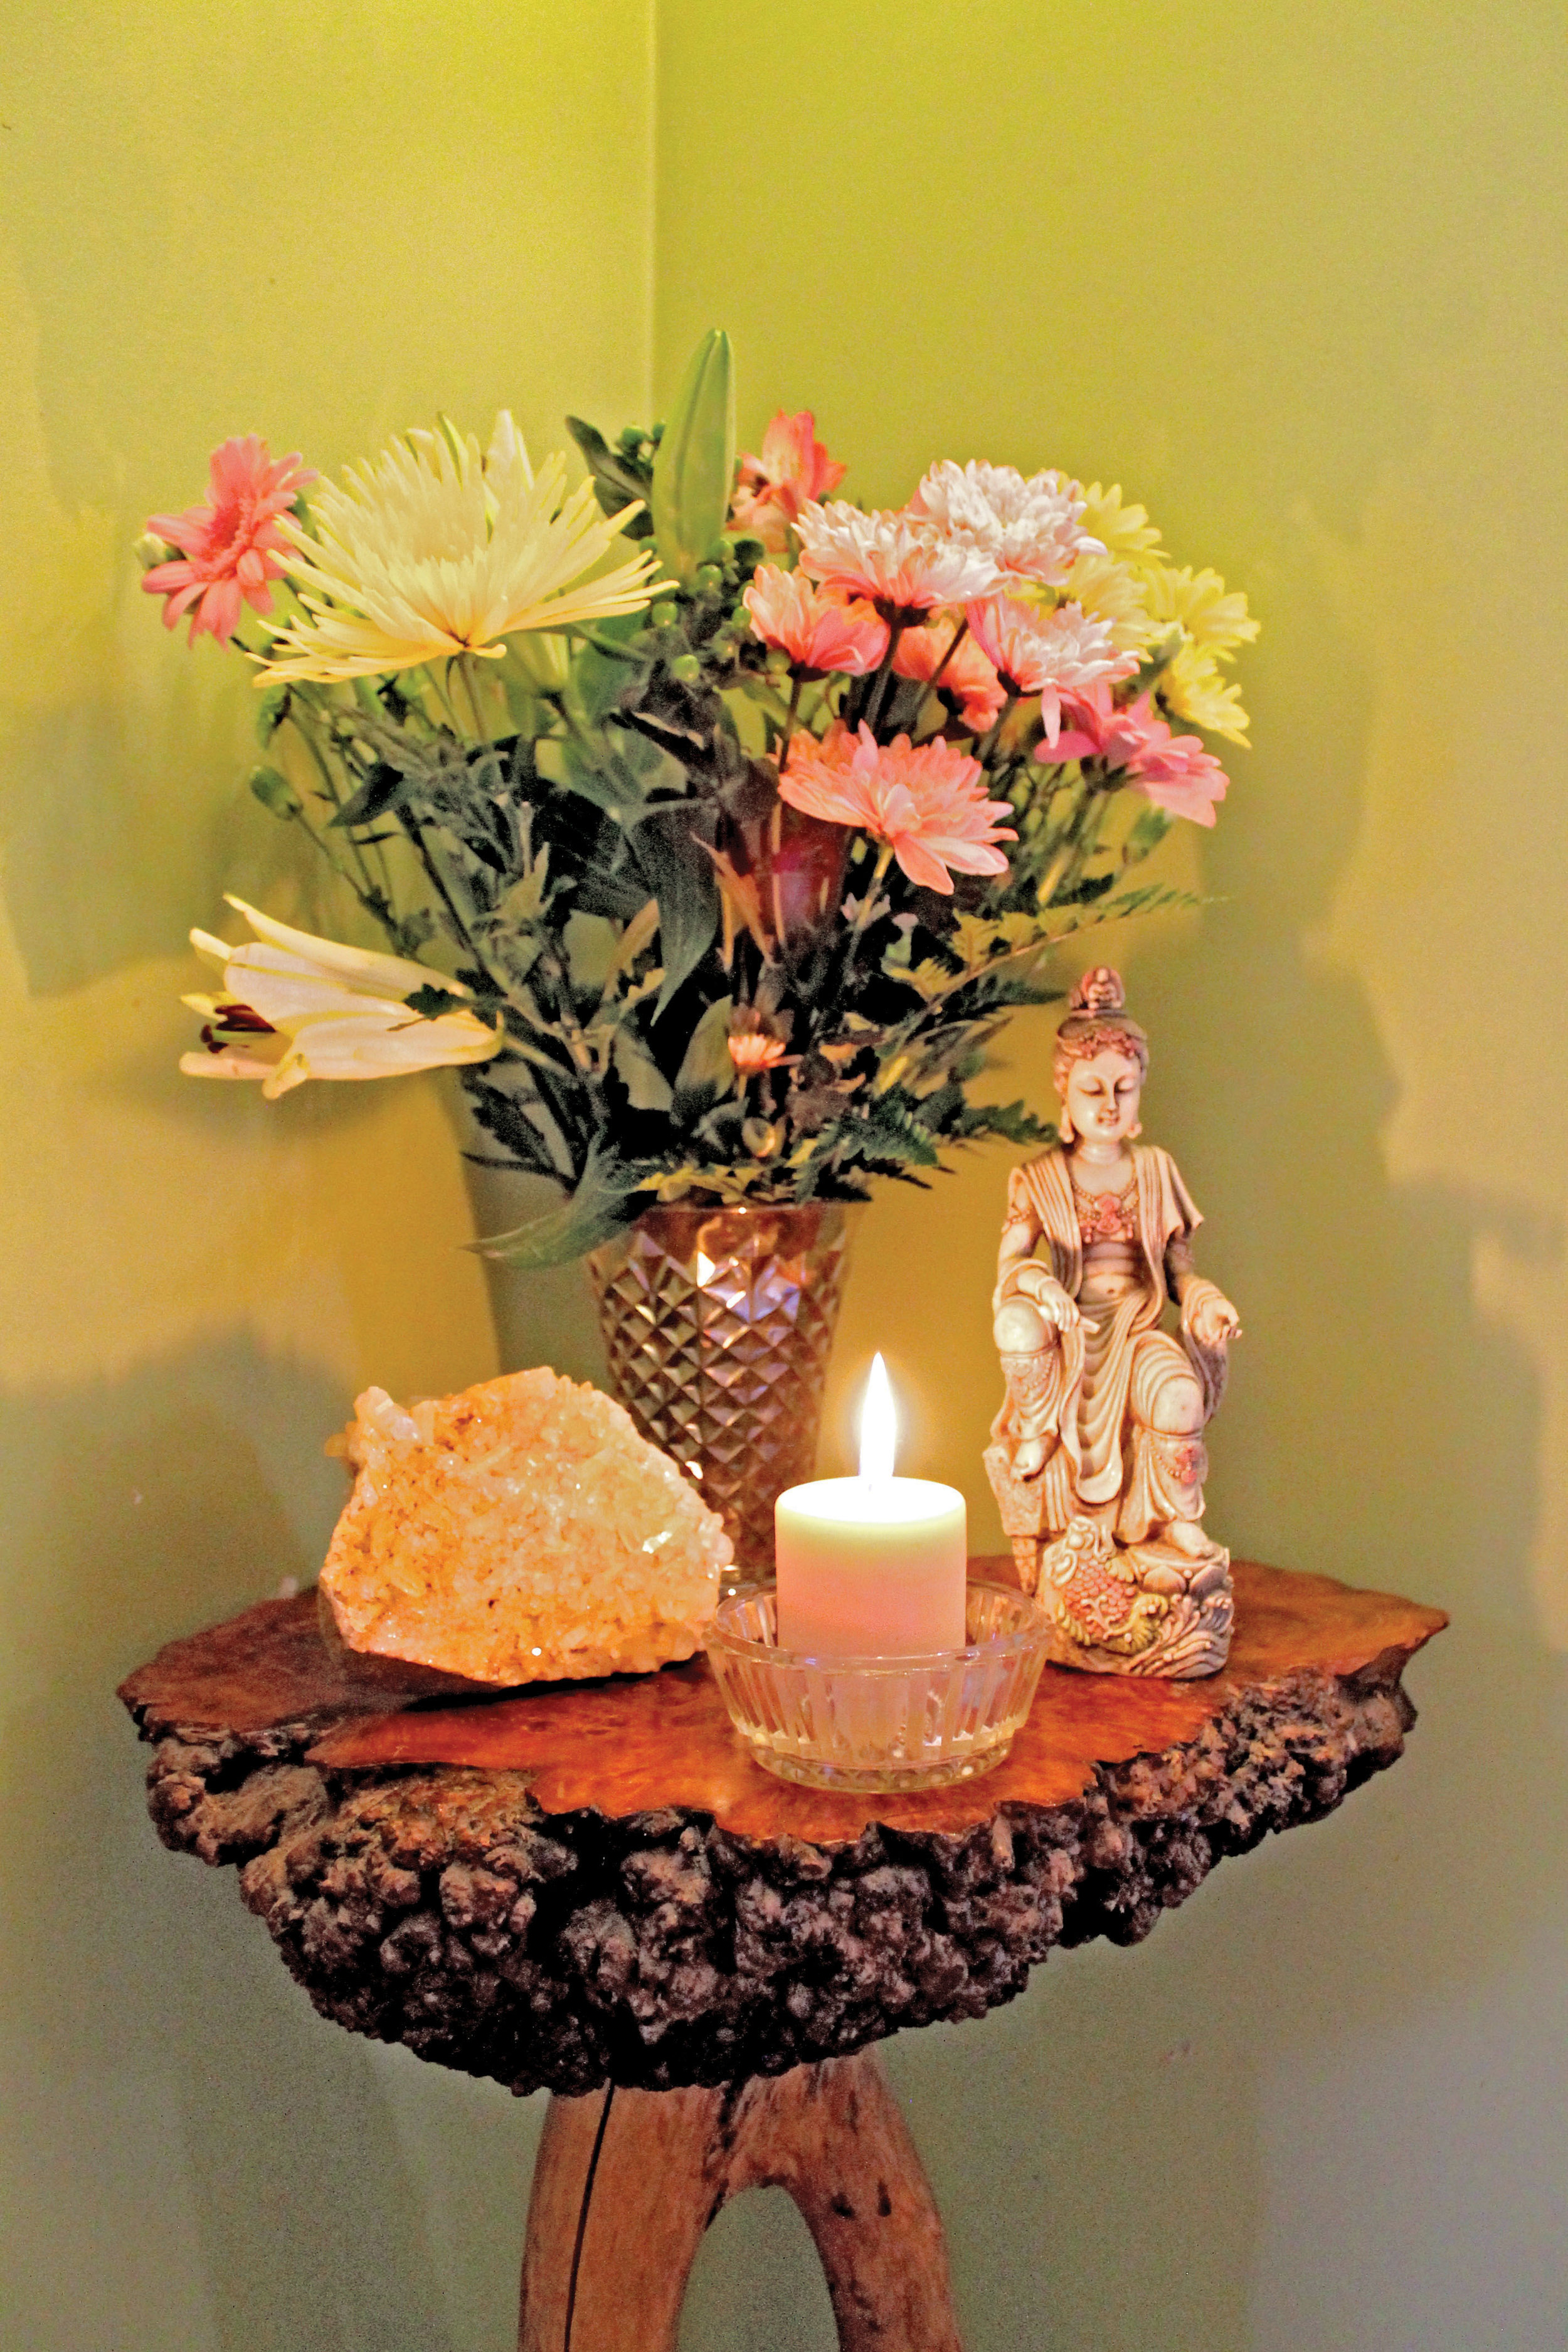 Small shrines to the Hindu Deities with crystals and flowers dot Springer's North Hastings studio. Photo by Michelle Annette Tremblay